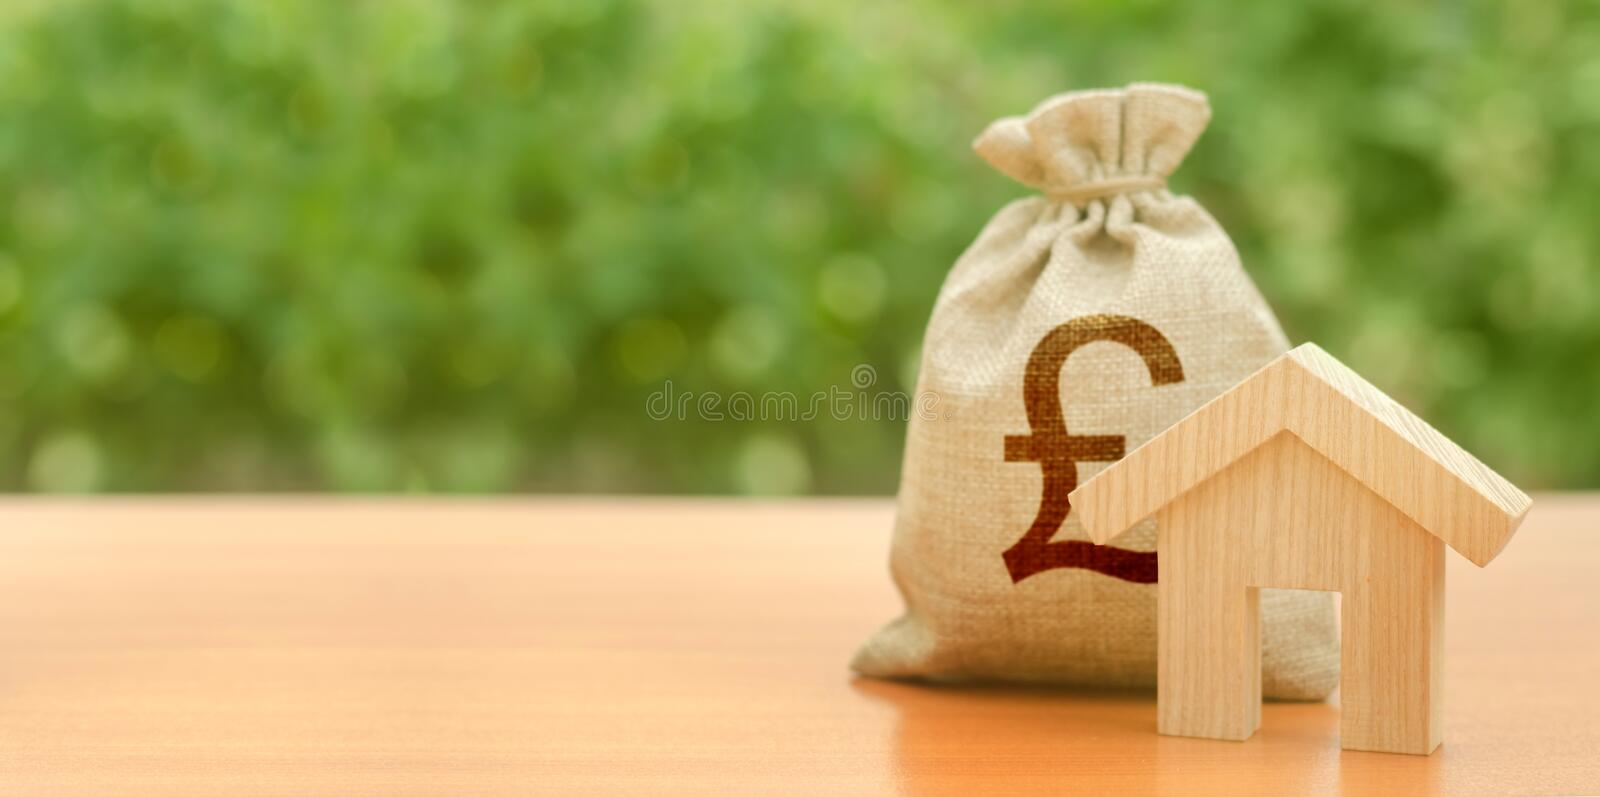 Wooden house figurine and pound sterling money bag on the background of nature. Budget, subsidized funds. Mortgage loan royalty free stock photography